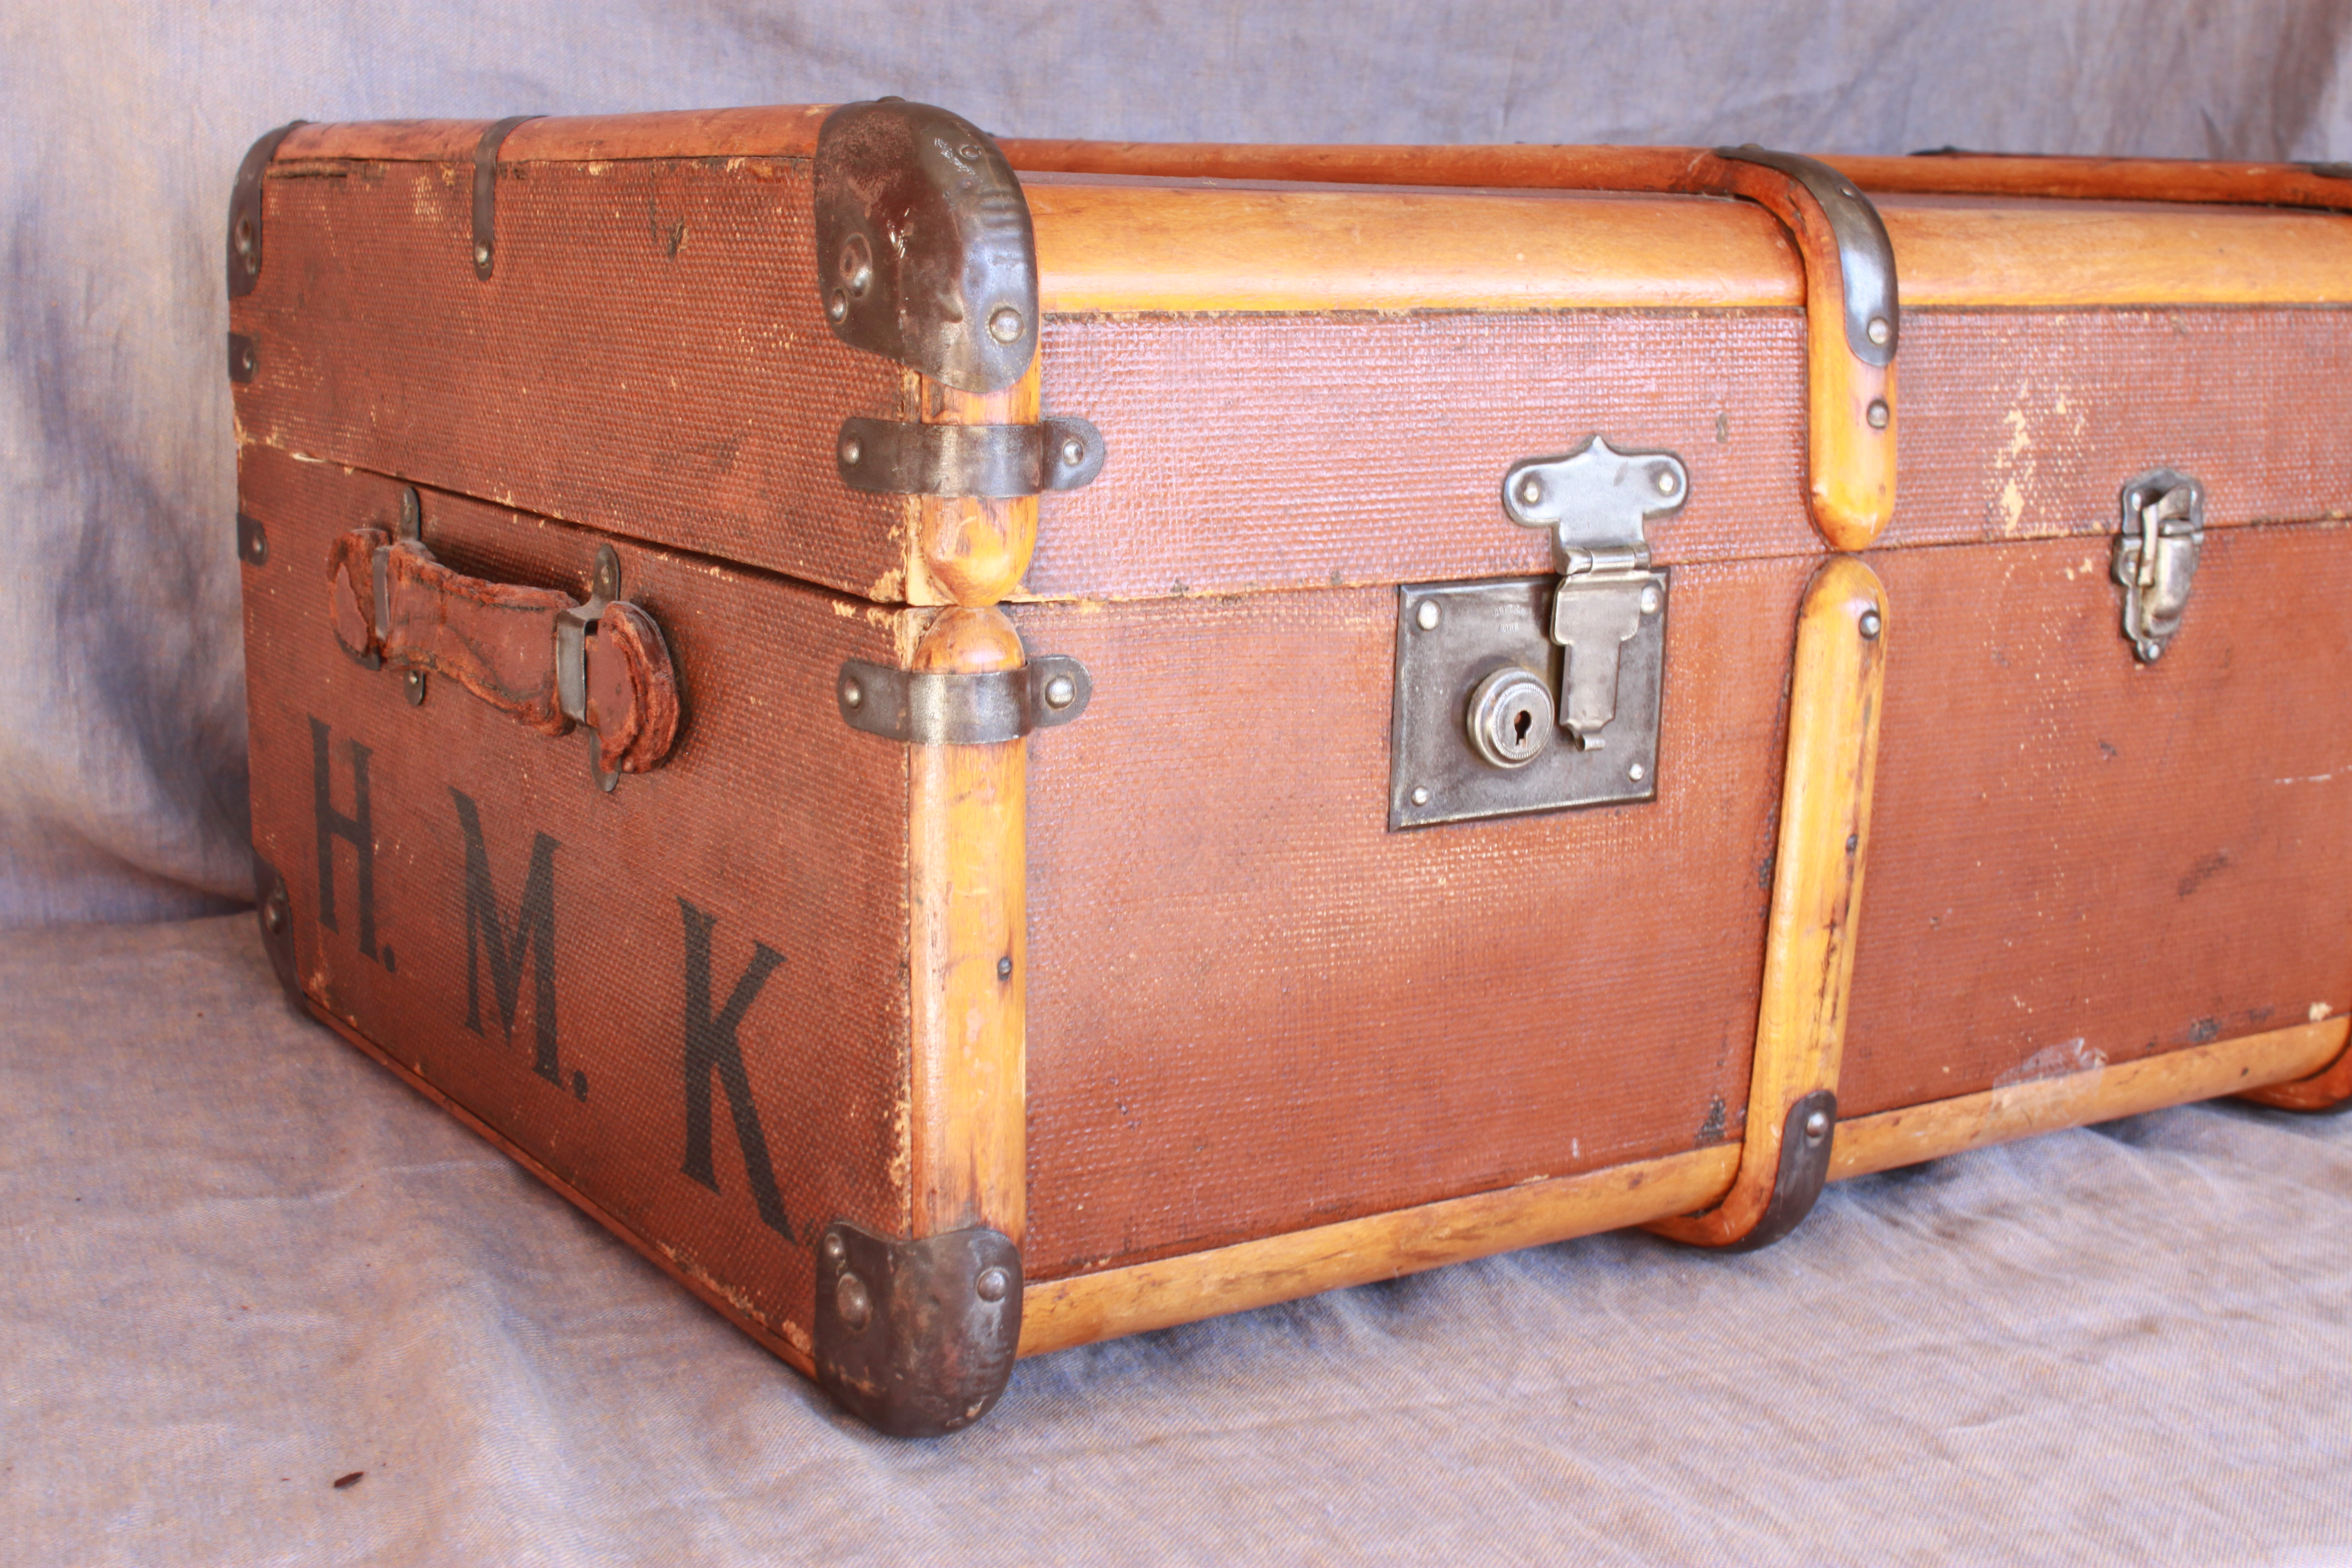 Vintage Steamer Trunk | THE CAVENDER DIARY